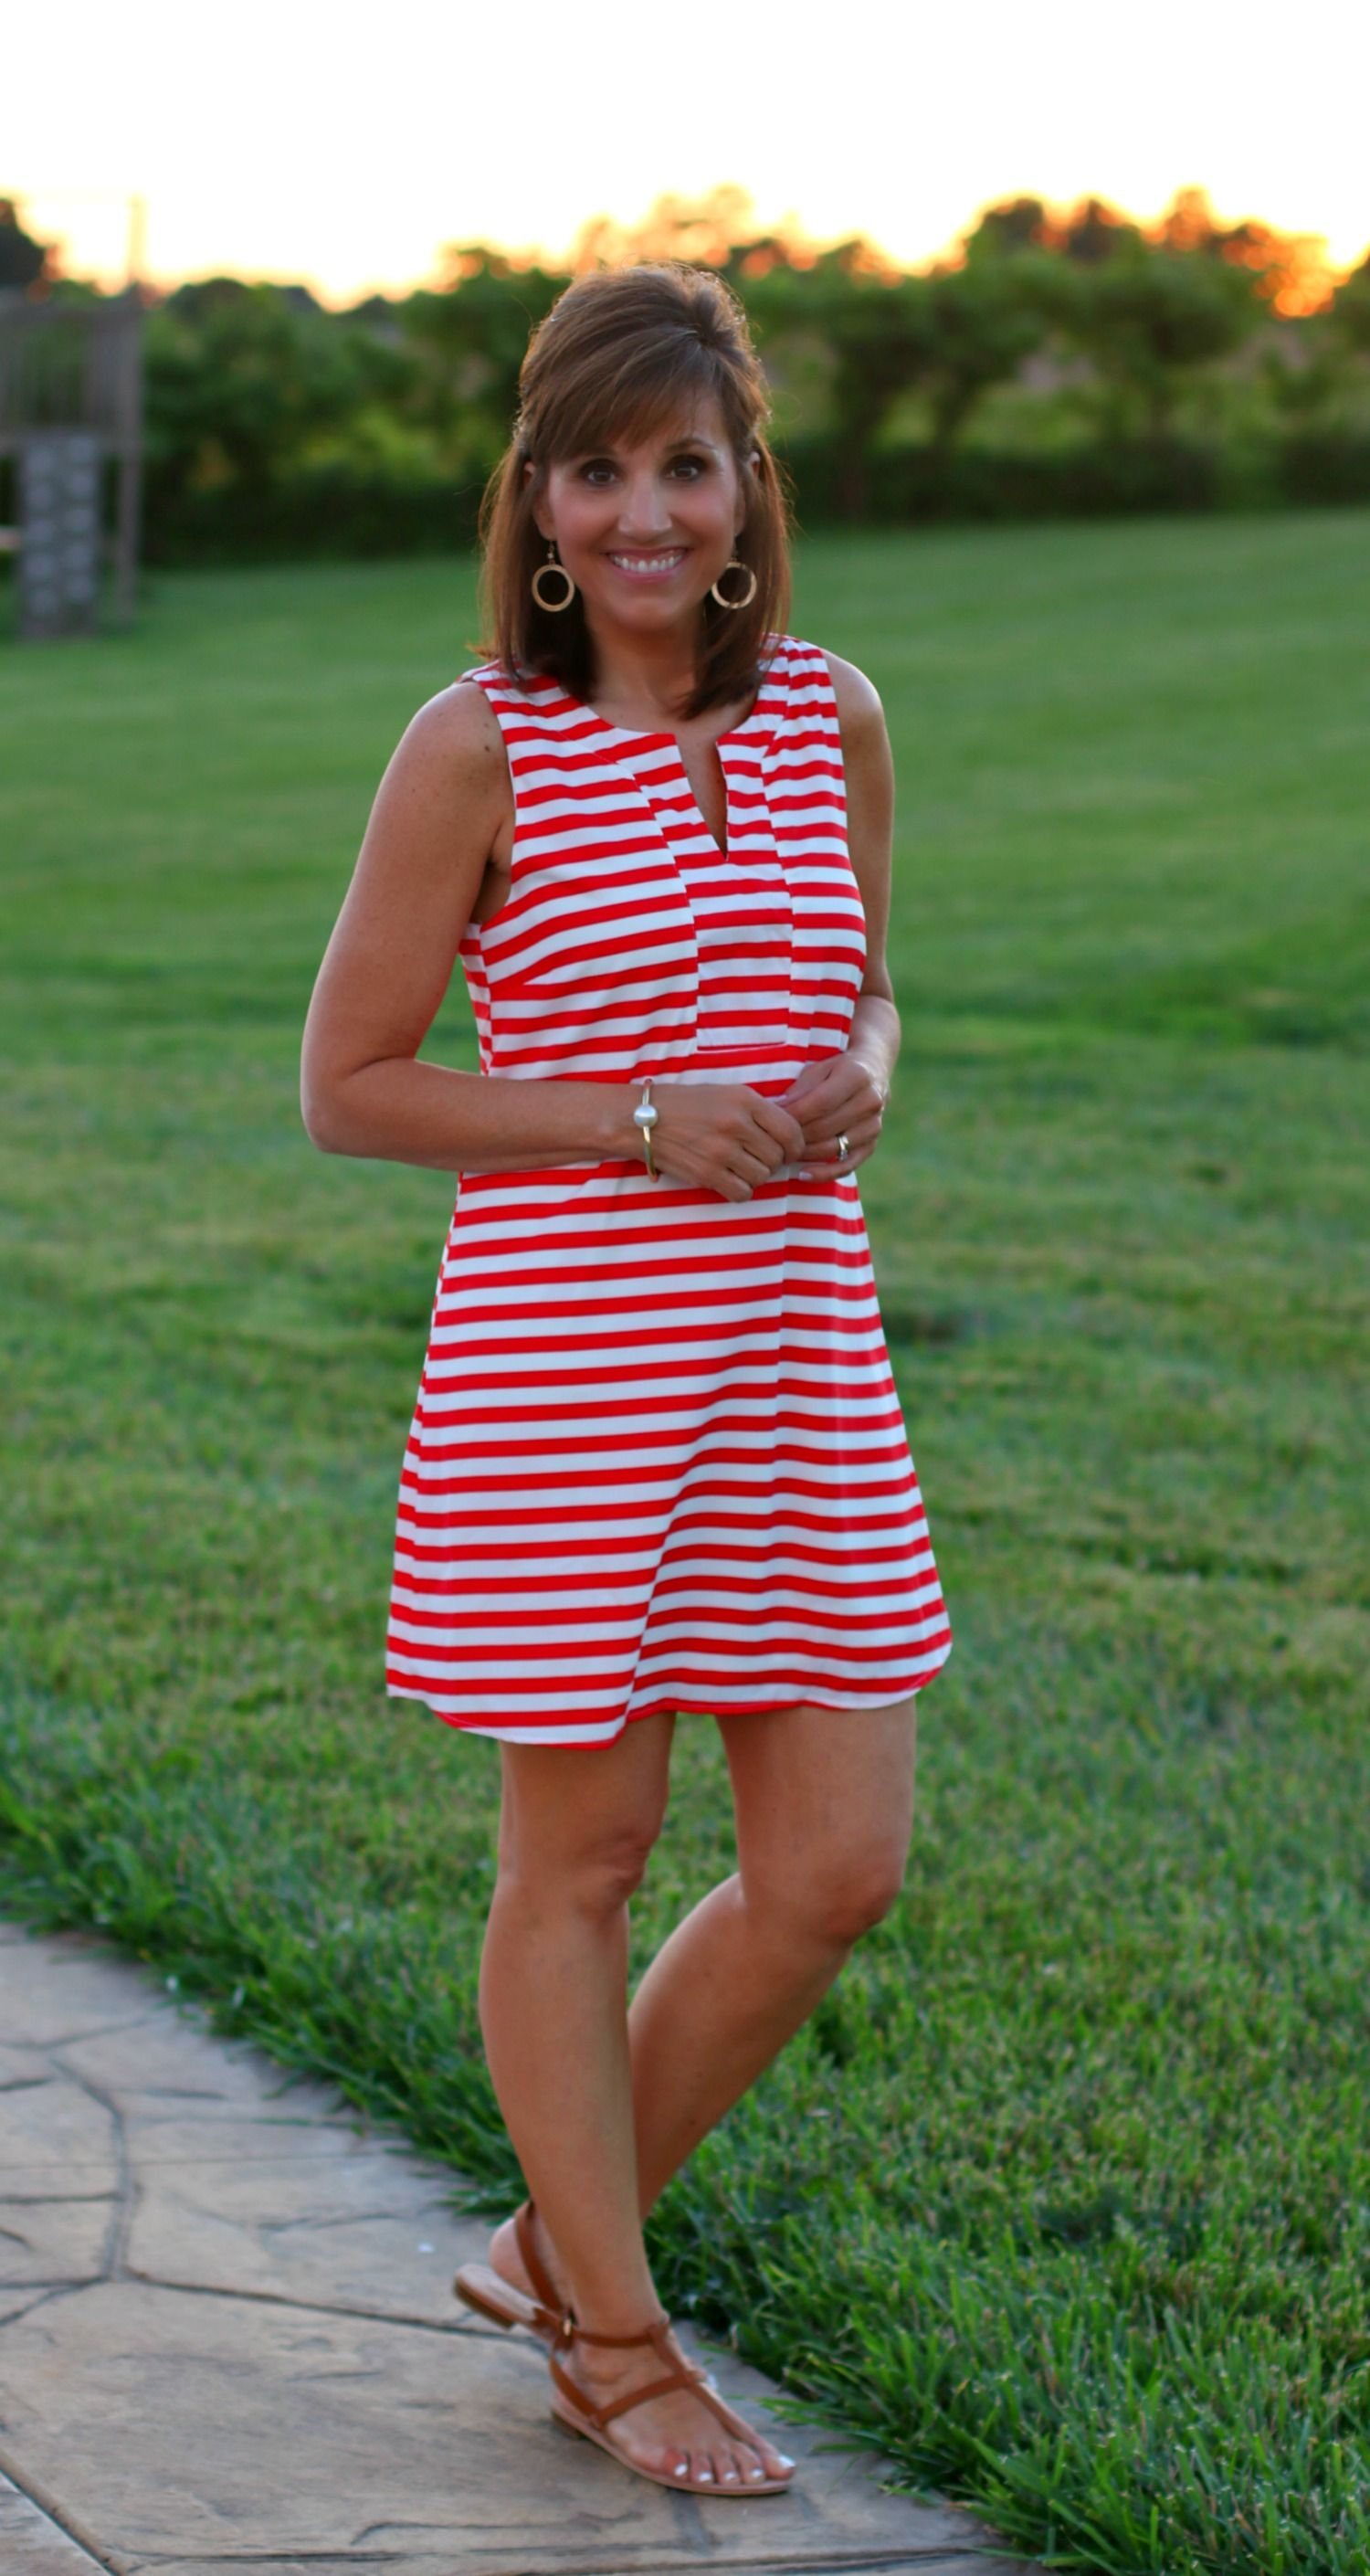 22 Days of Summer Fashion-4th Of July Outfits | Ropa de playa, Playa ...